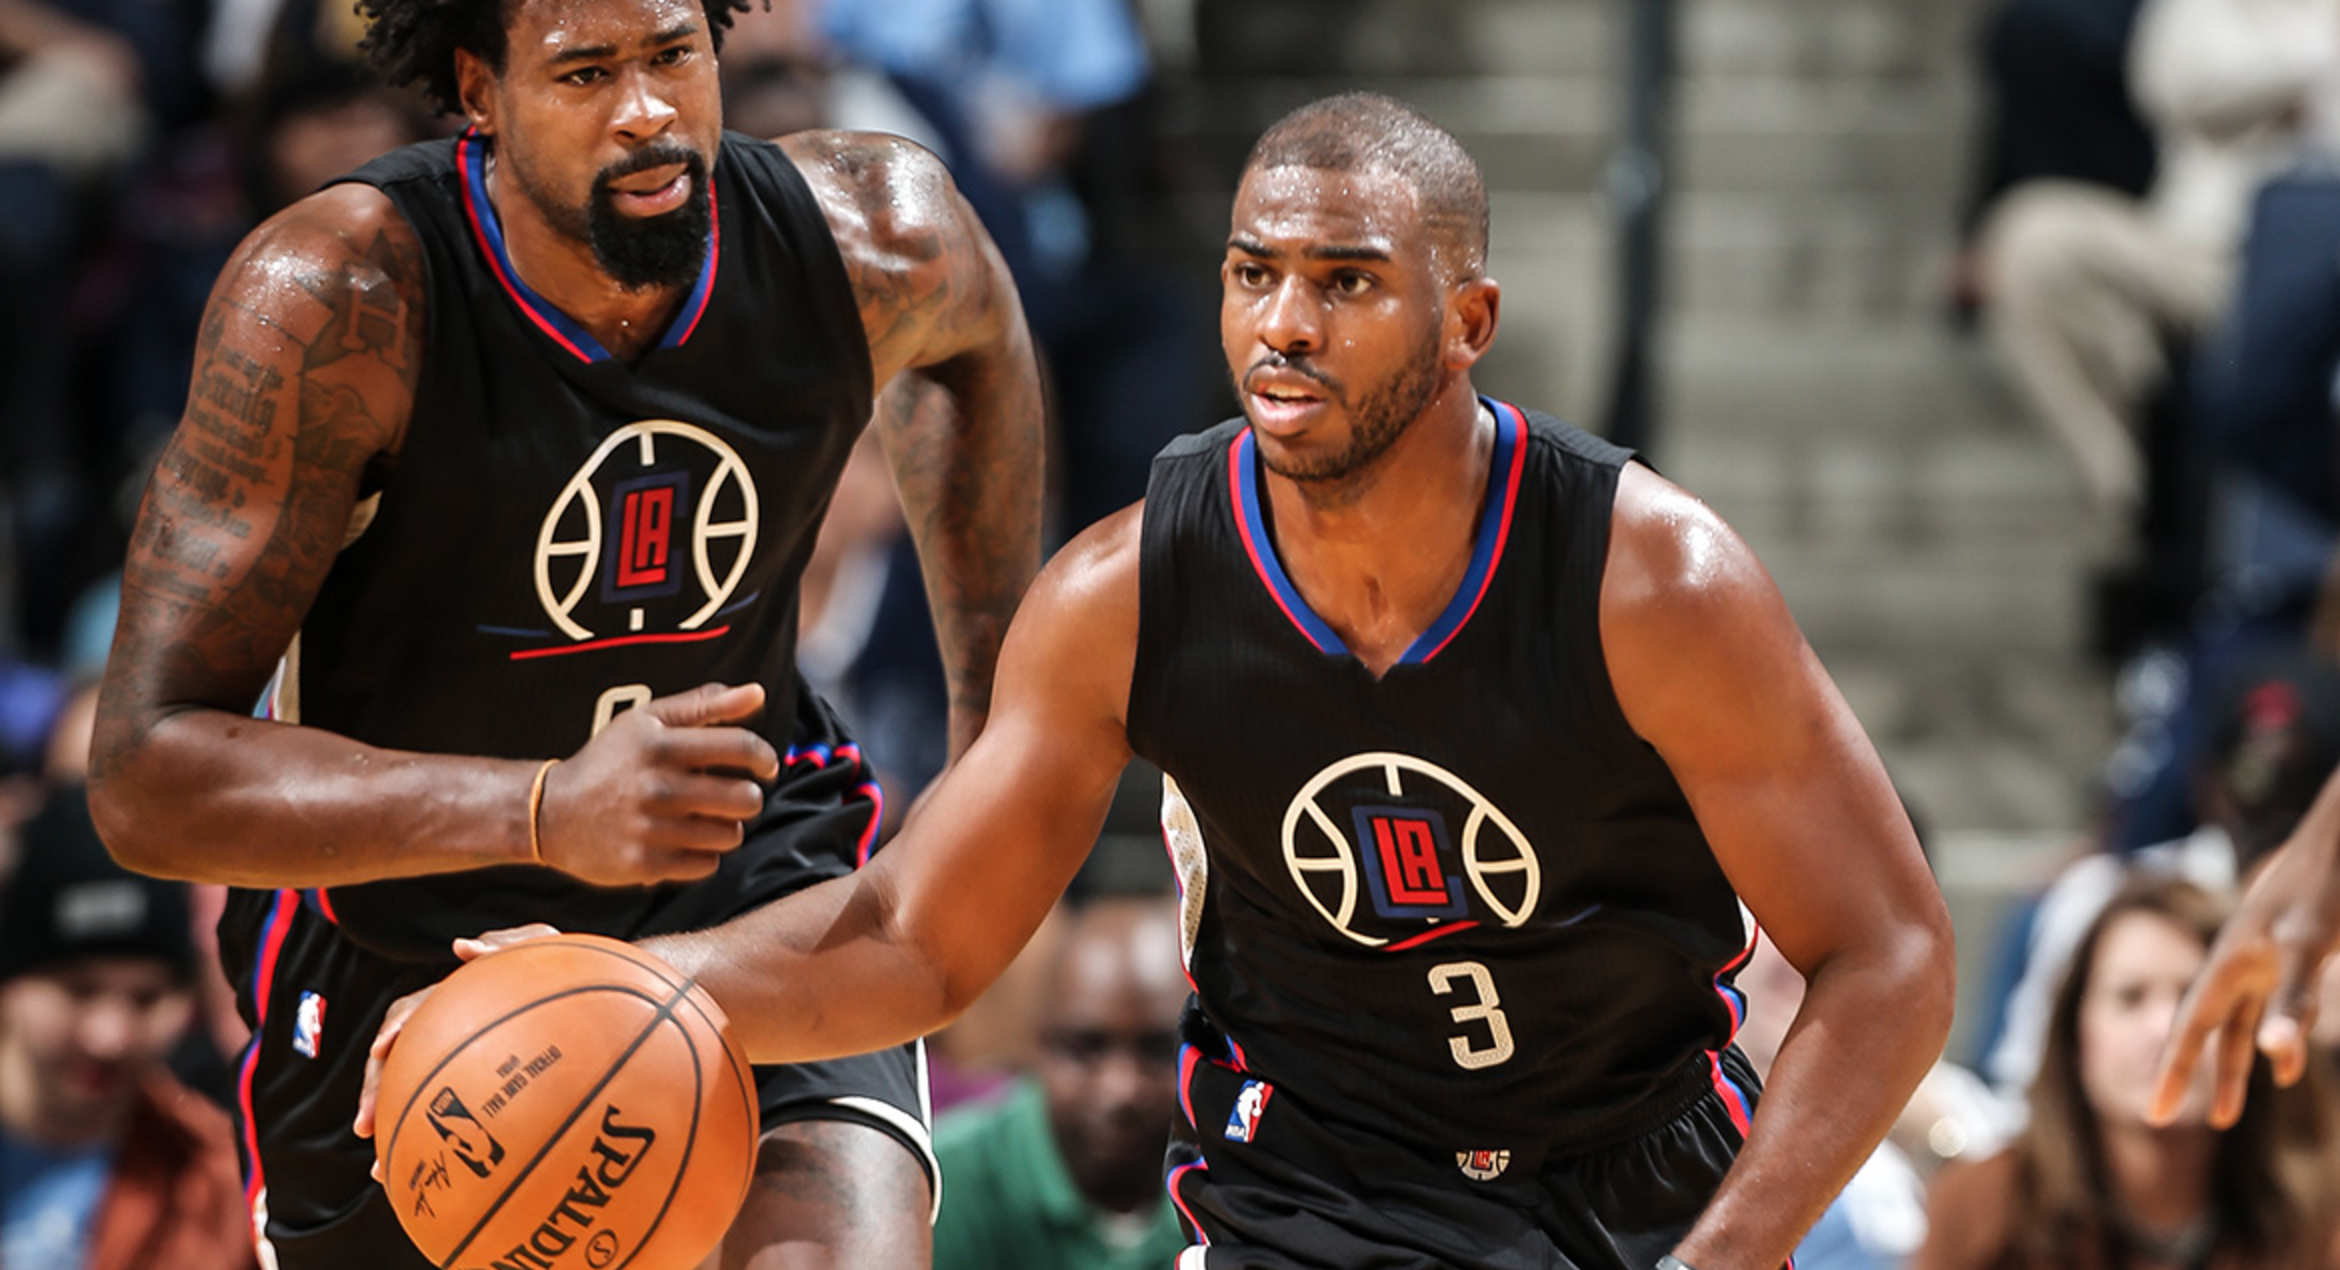 Chris Paul Sets Clippers' Franchise Record For Assists